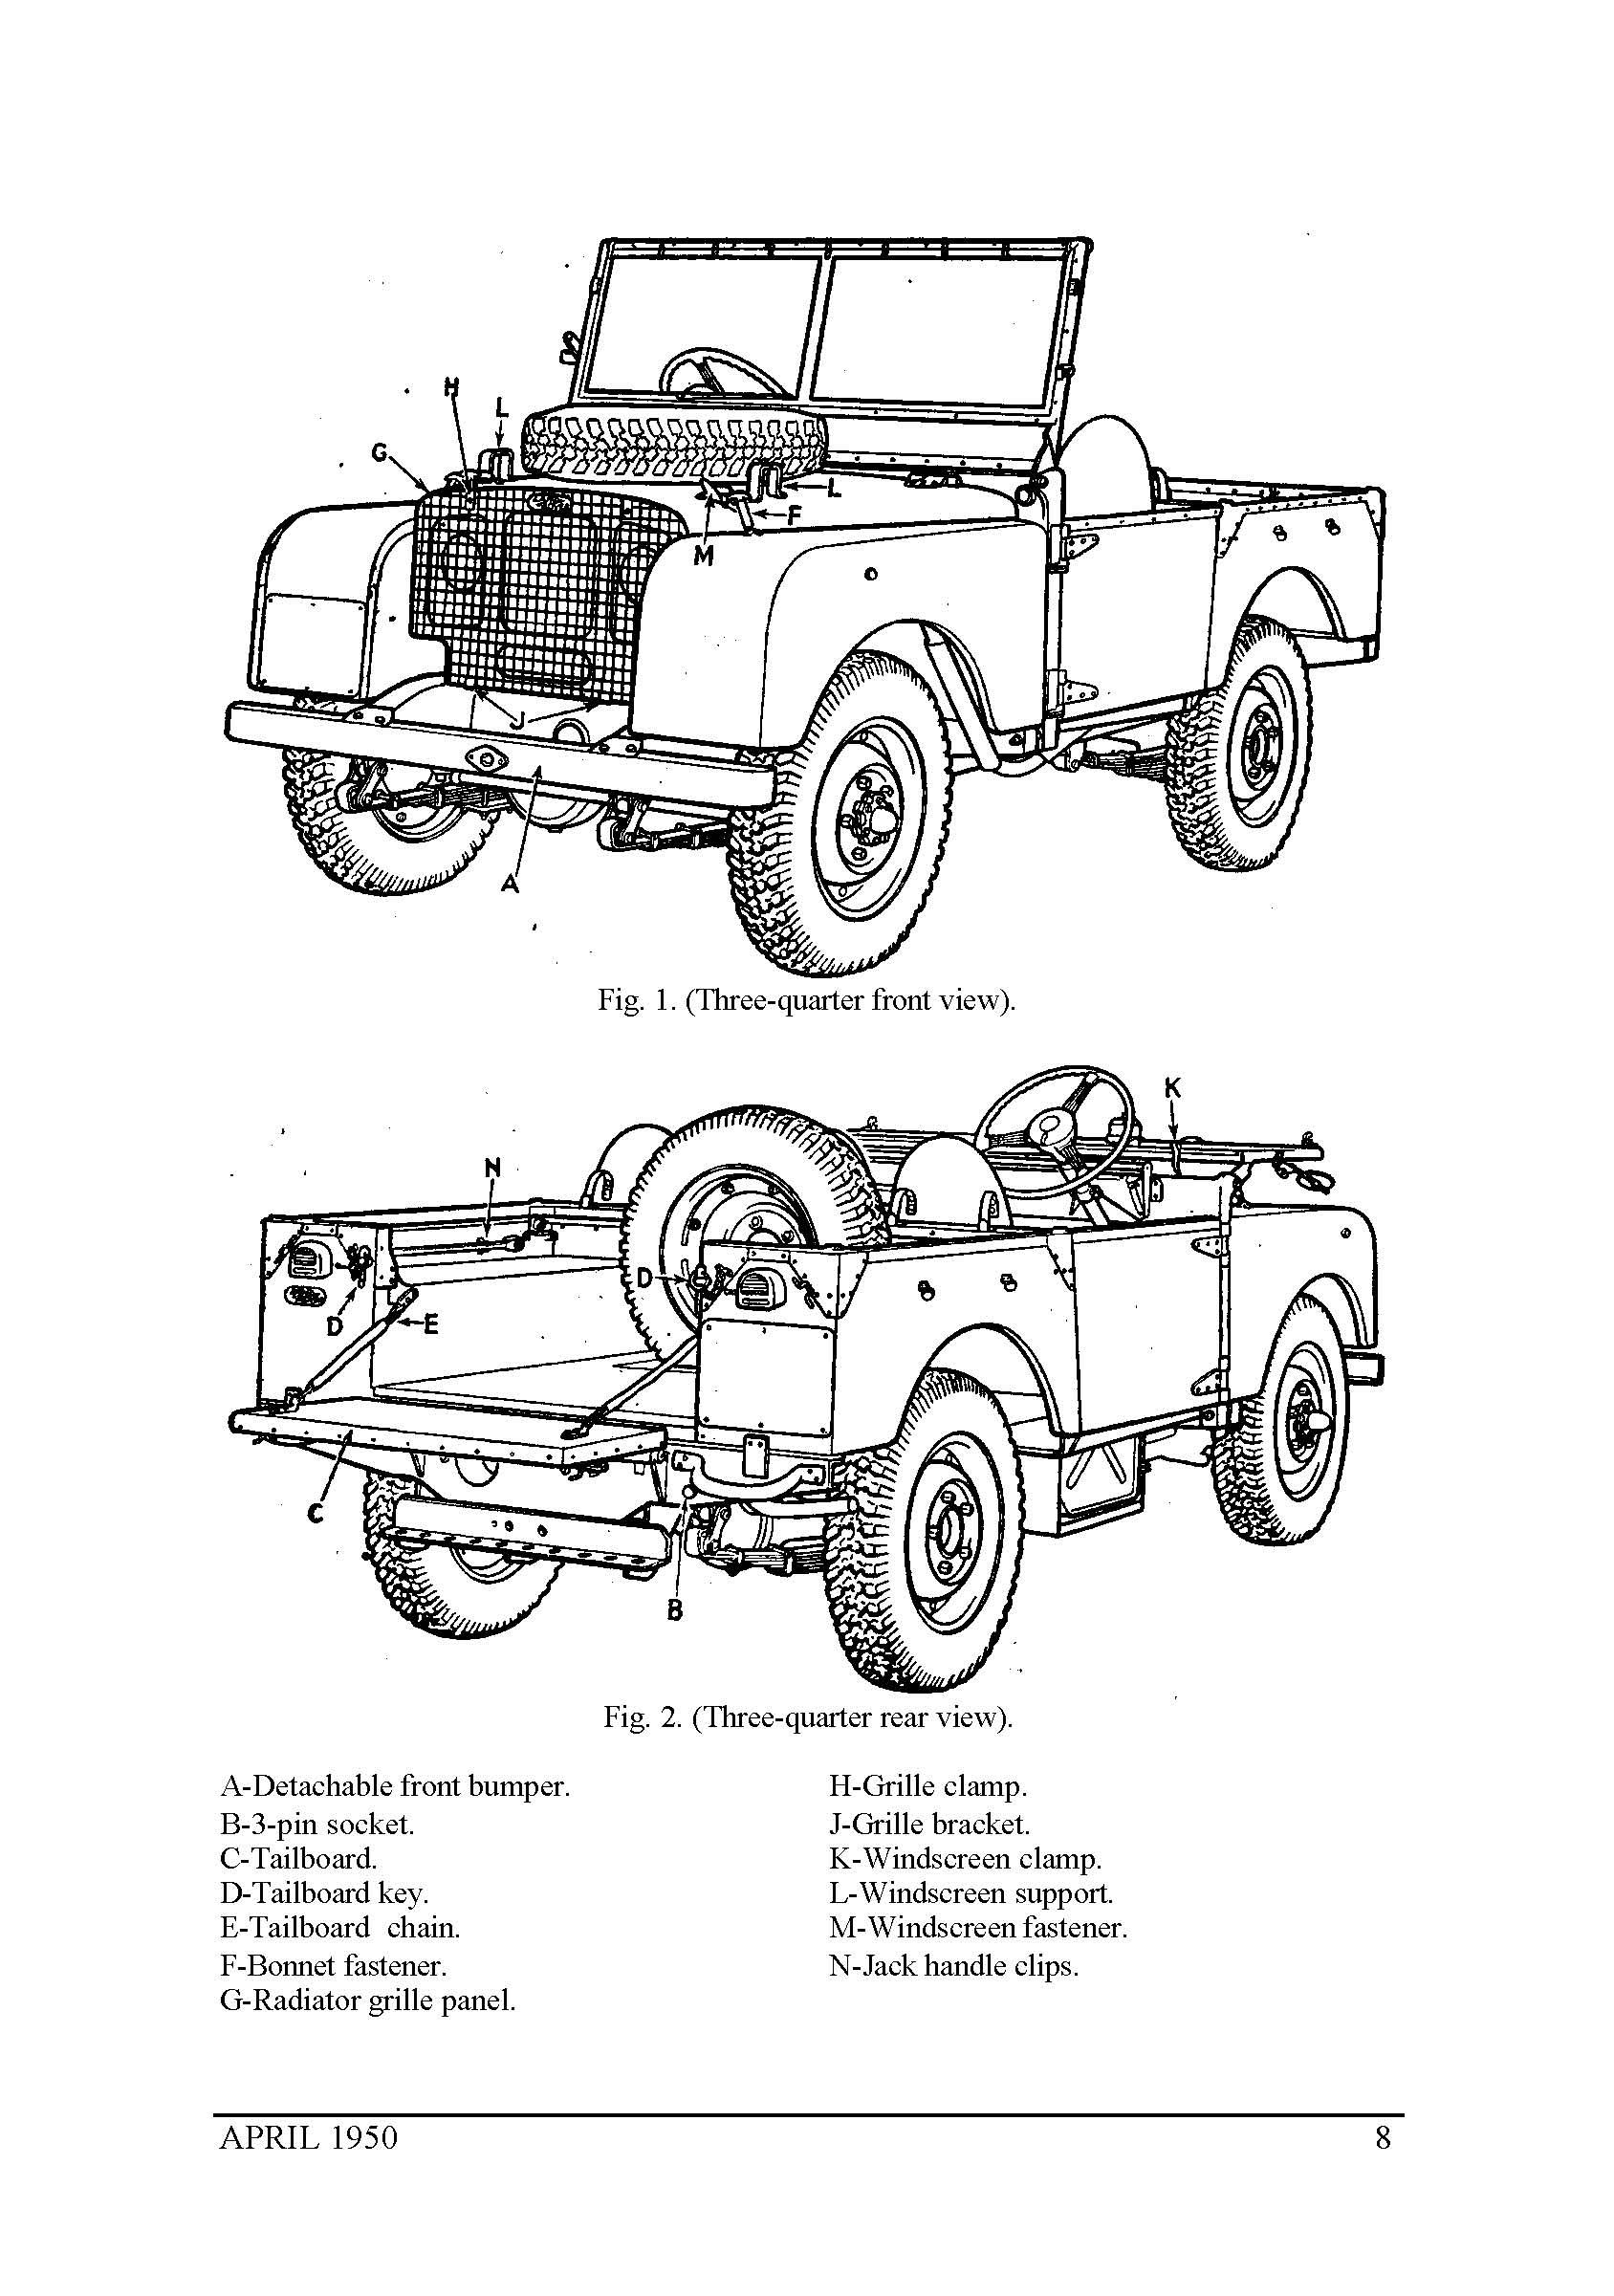 The series 1 Landrover, a manual for it, is available here